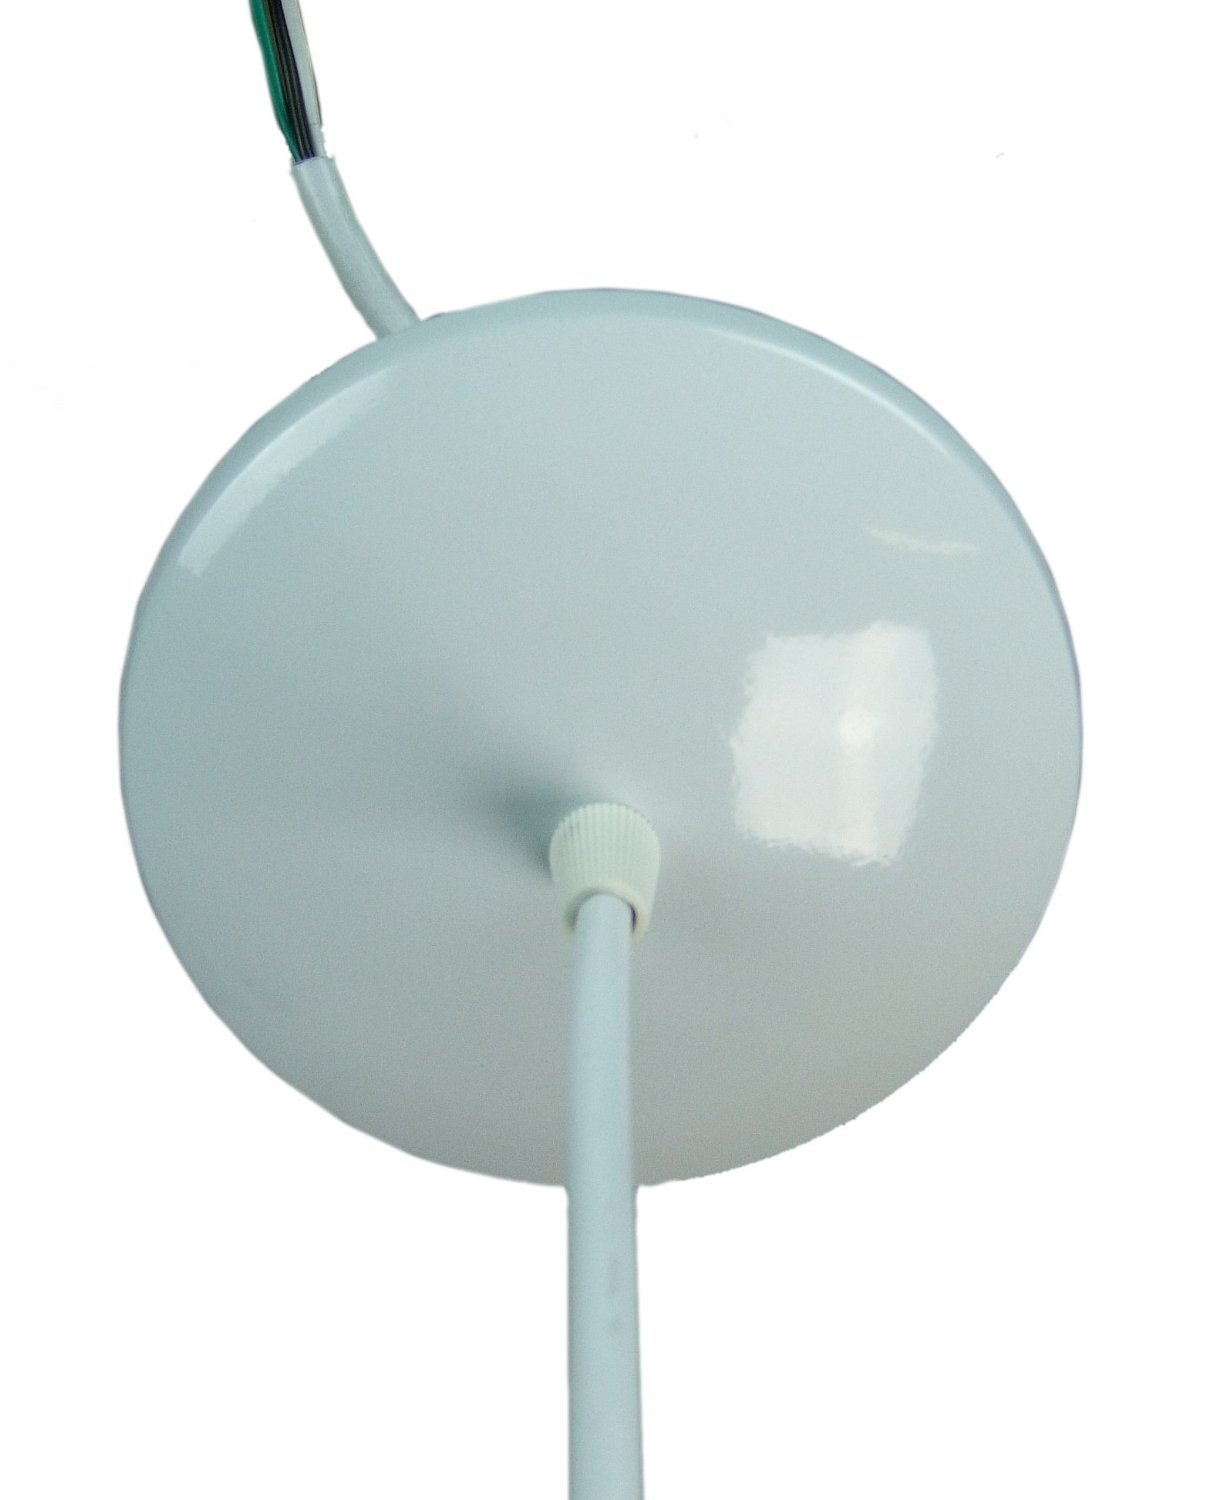 Canopy Kit White - Convert Your Home Concept Plug in Swag to a hardwire Pendant Light - Includes Everything You Need